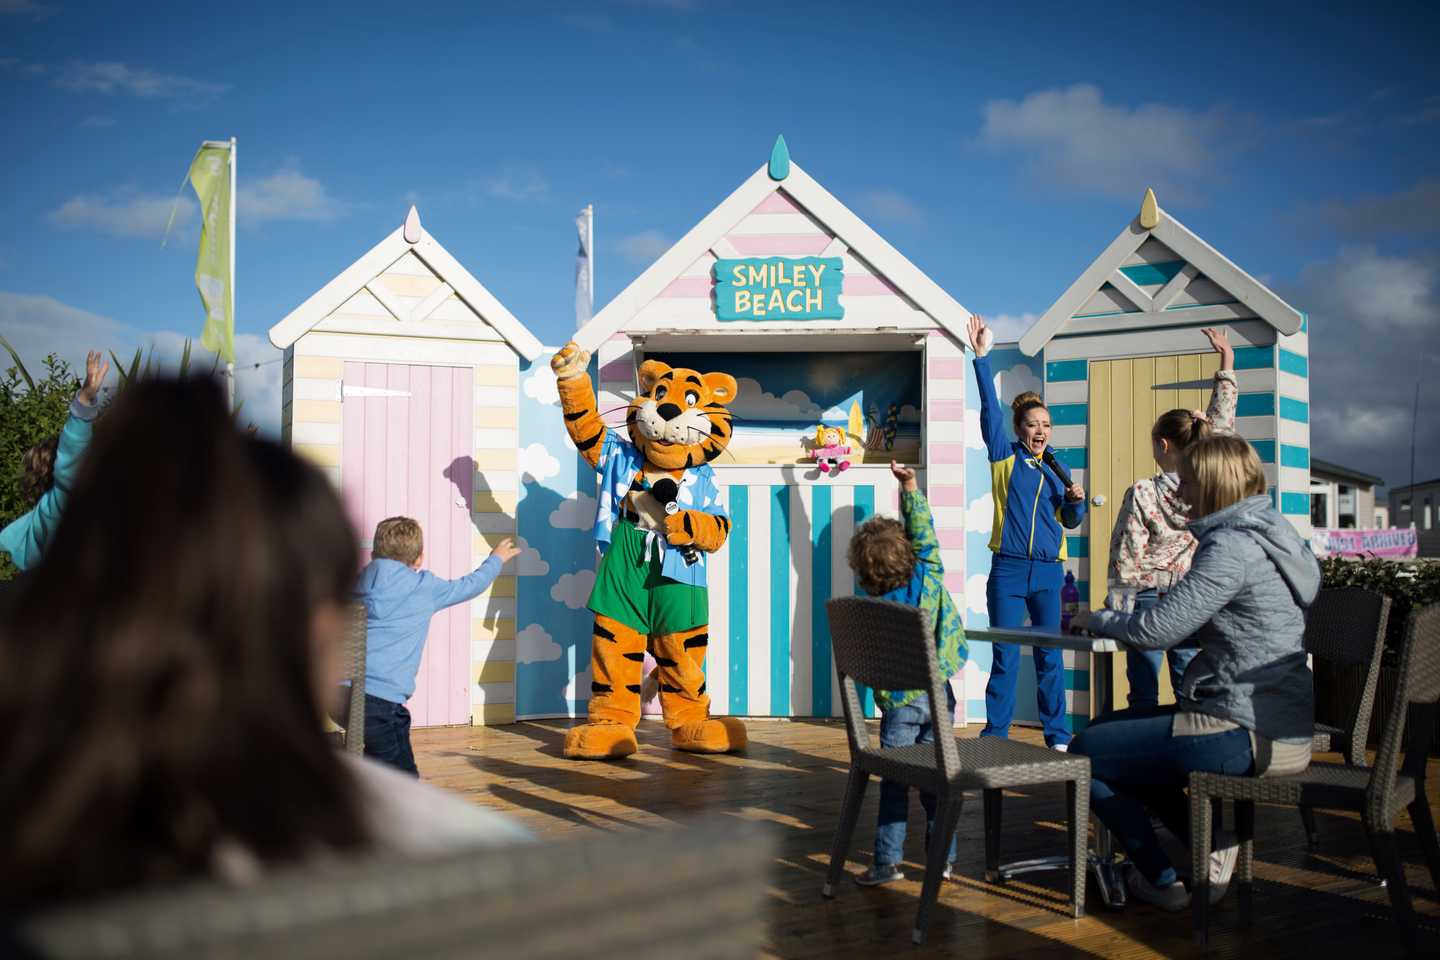 Rory by the Pop-Up Puppet Theatre Co. beach hut